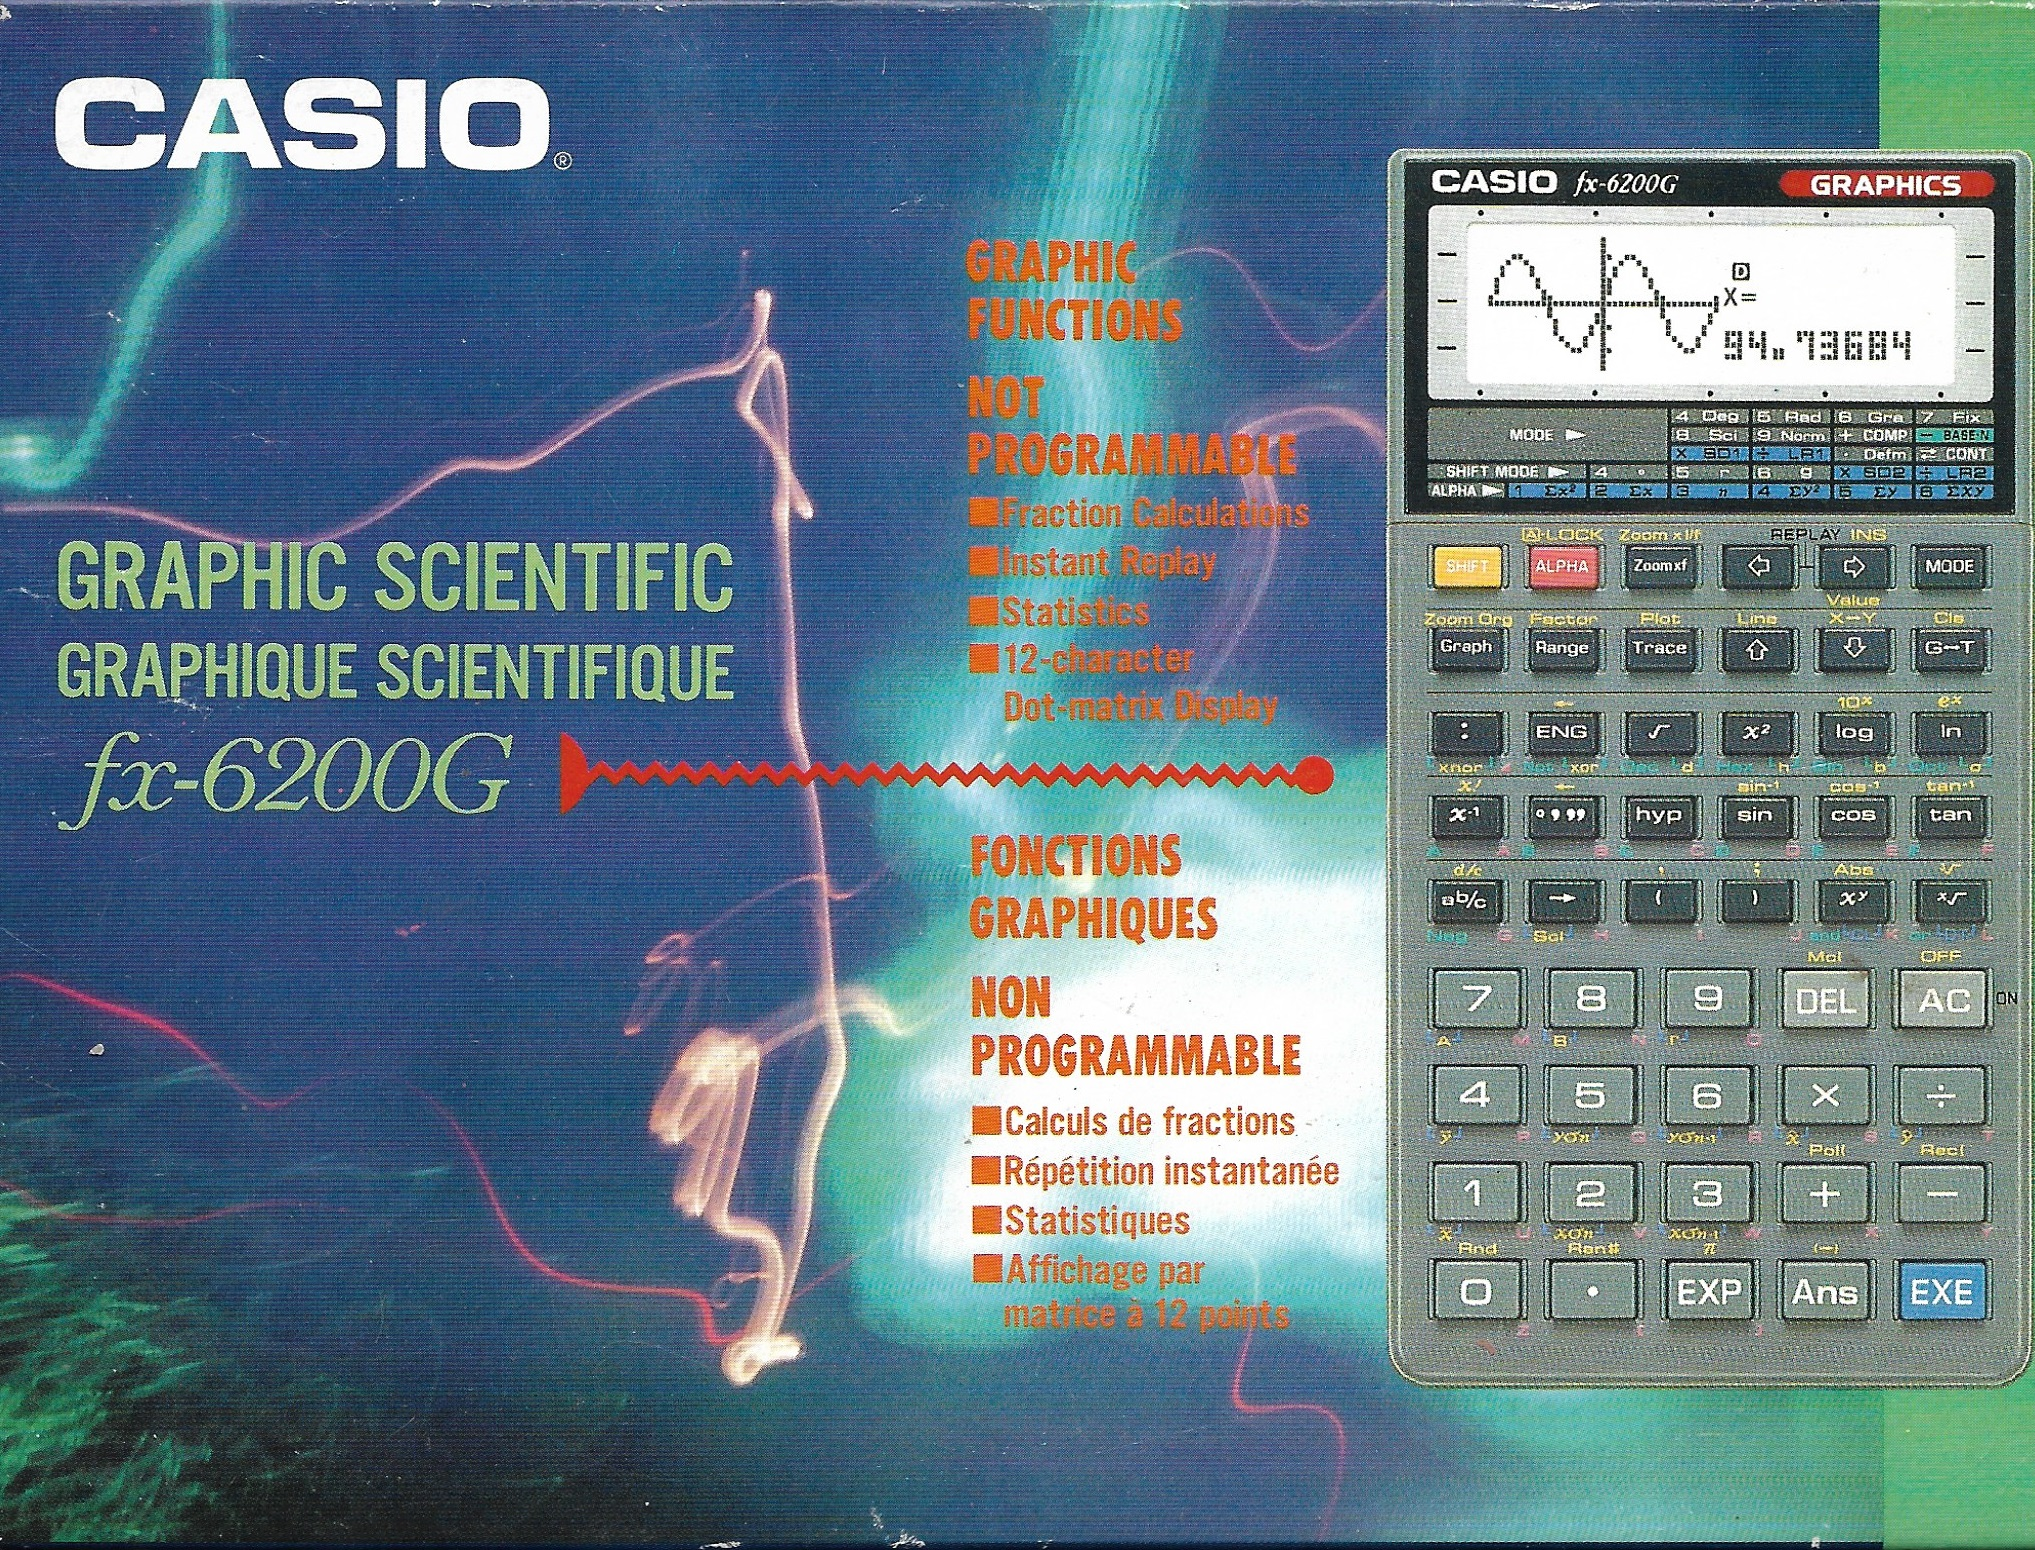 Copyright 169 2017 the design co all rights reserved - Casio Fx 6200g Casio Pocket Computers Amp Calculators Collector Pb Fx